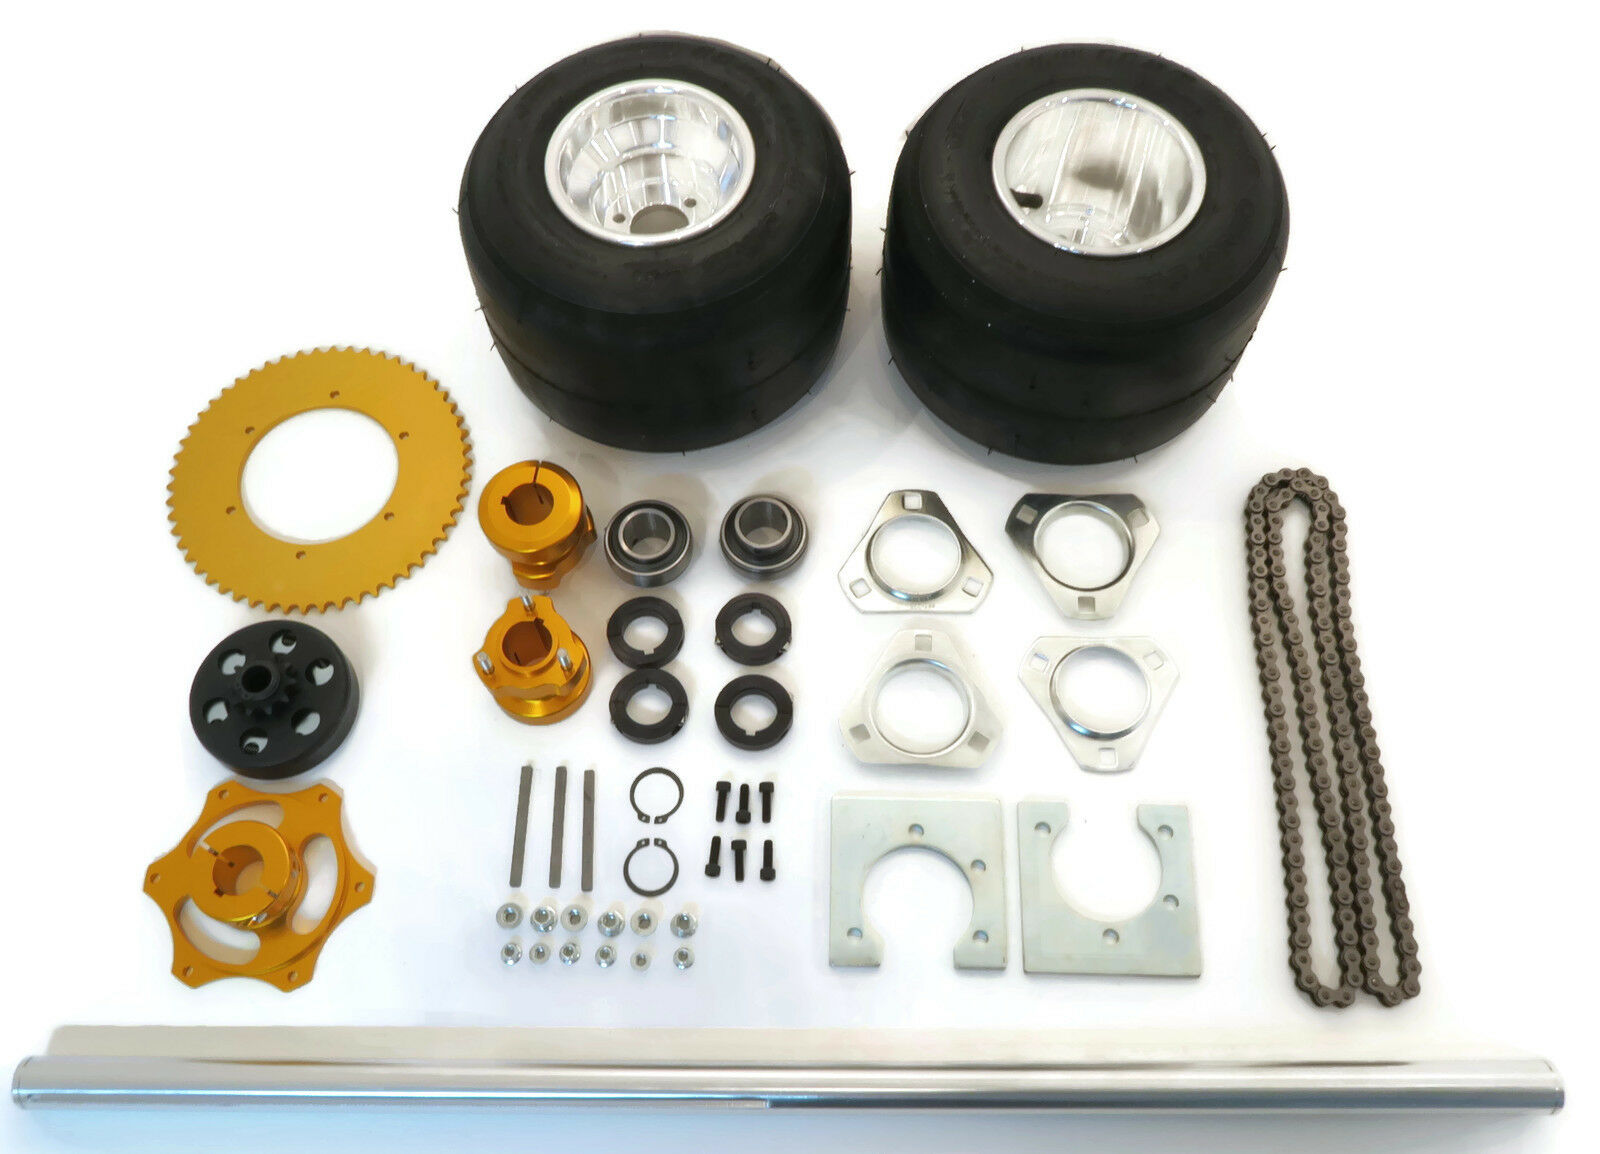 36 Inch Shaft Kit for Drift Trike Bikes with  10T, 3 4 Inch, Clutch and Keys  the newest